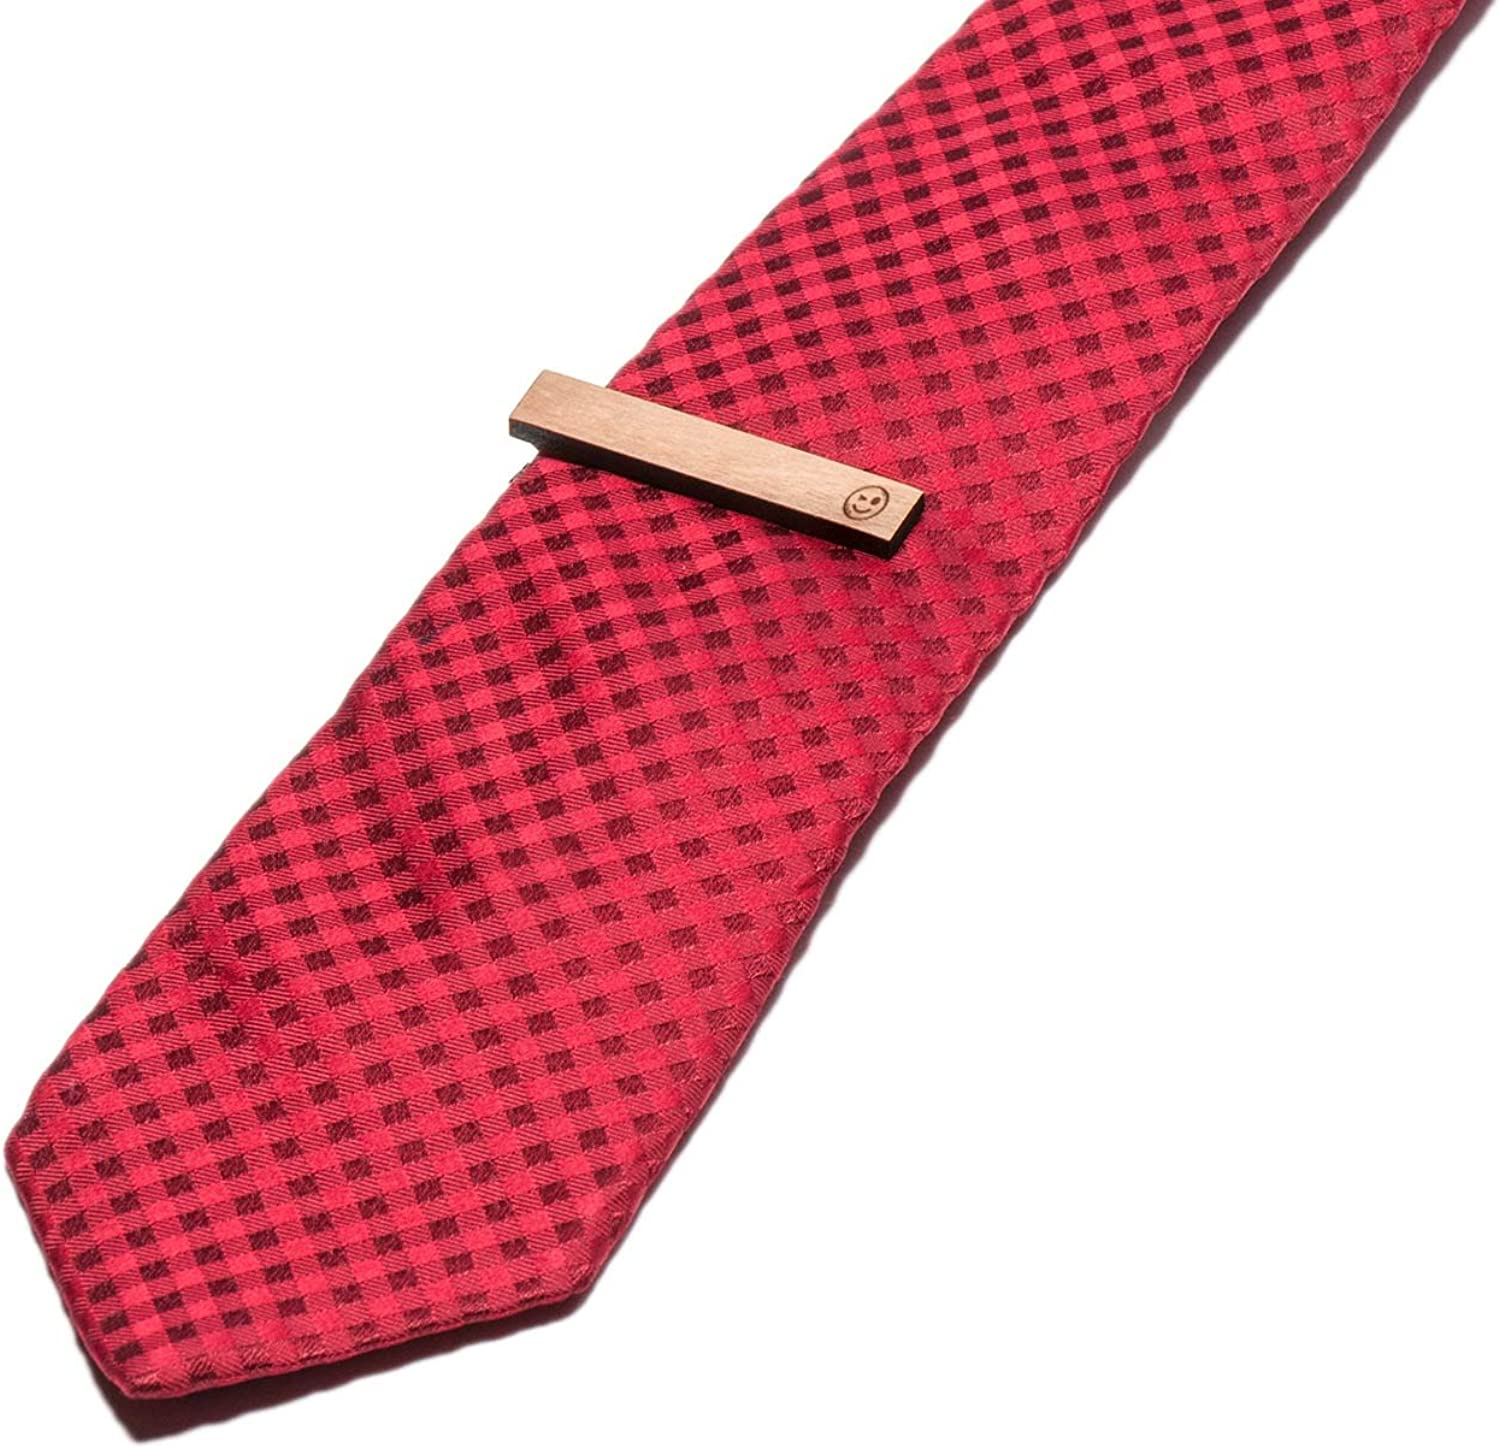 Wooden Accessories Company Wooden Tie Clips with Laser Engraved Clever Design Cherry Wood Tie Bar Engraved in The USA